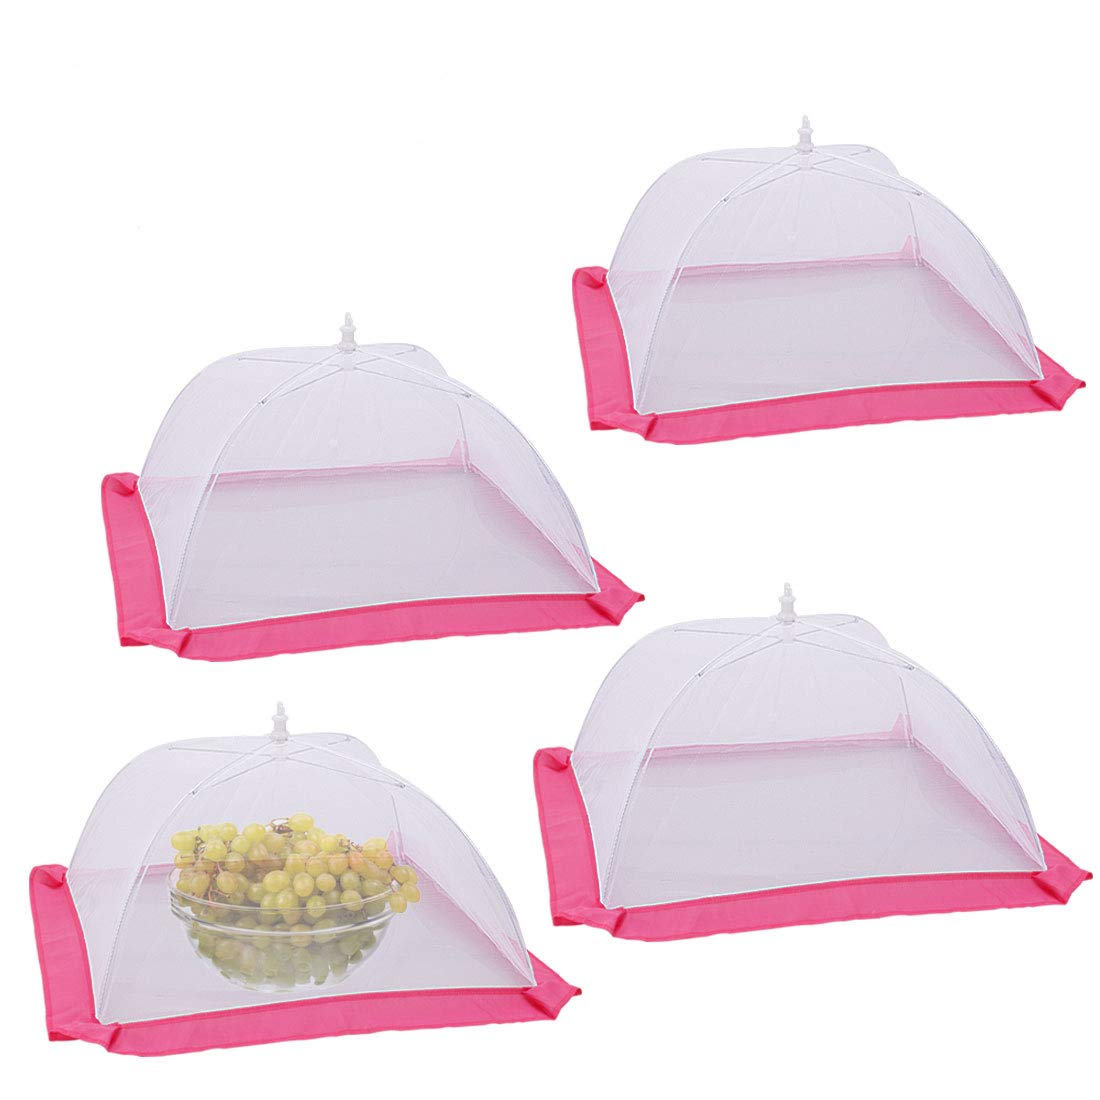 4 Pack Pop-Out Mesh Food Cover Tent Umbrella, 17 inch Collapsible Durable Mesh Screen Tent Protectors to Keep Flies, Mosquitoes and Bugs Away from Your Food and Fruit STYDDI